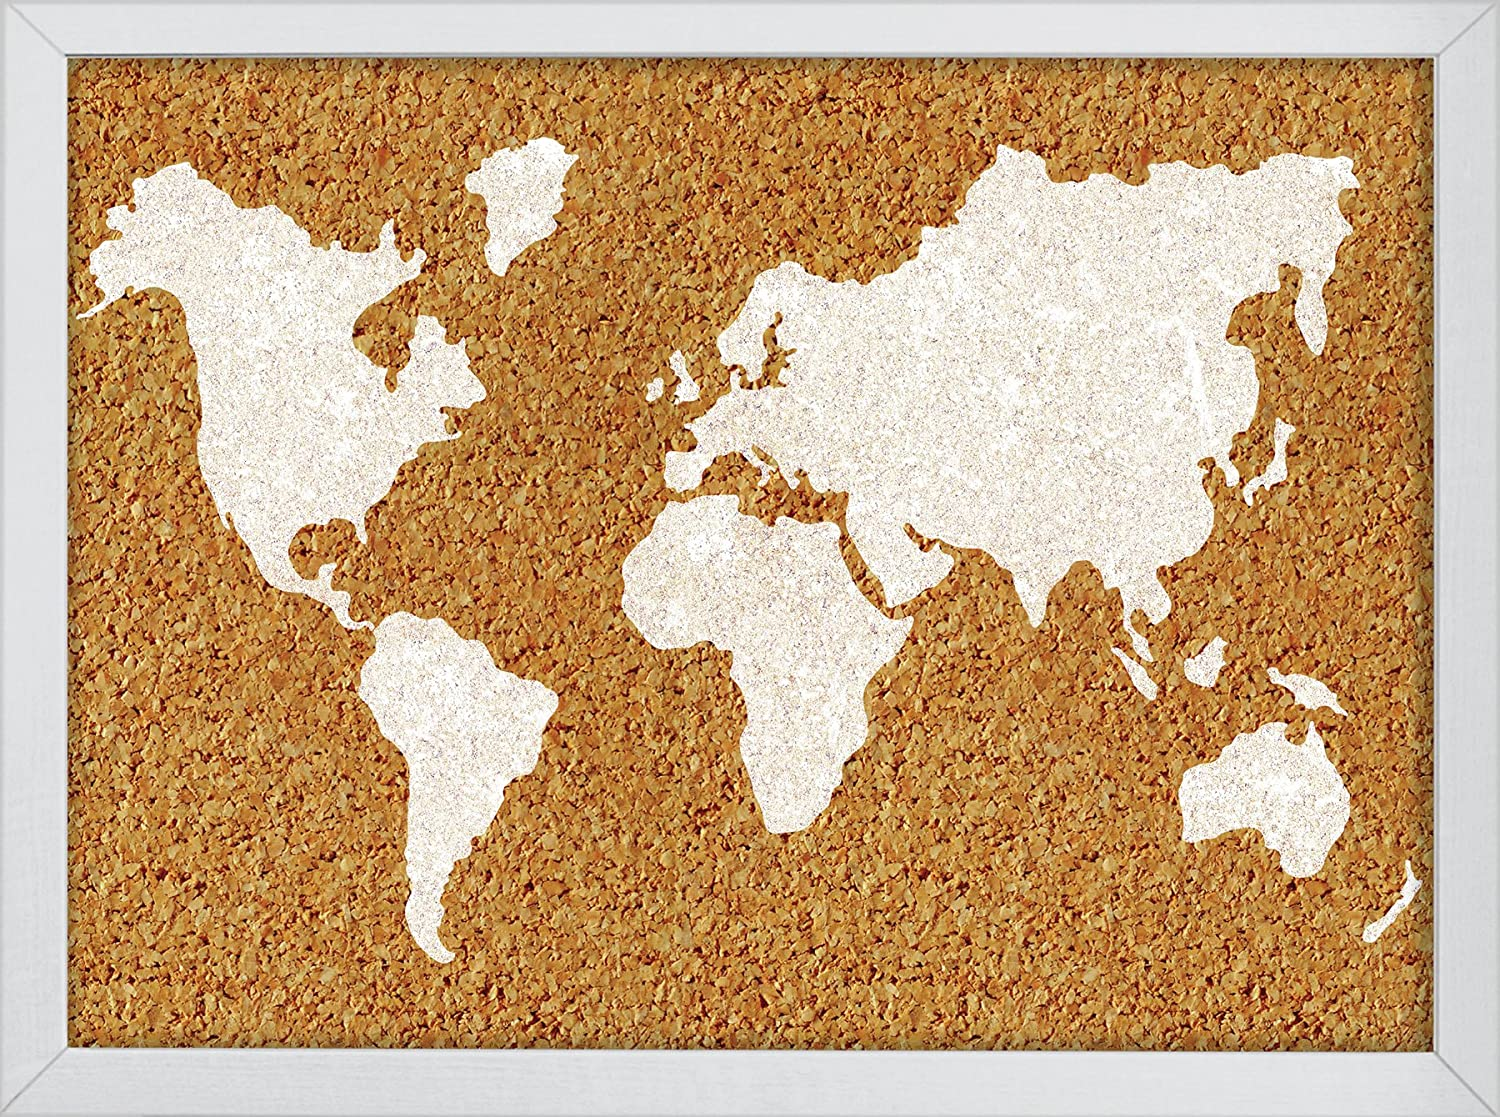 Wall Pops HB2164 The World Printed Cork Board WallPops